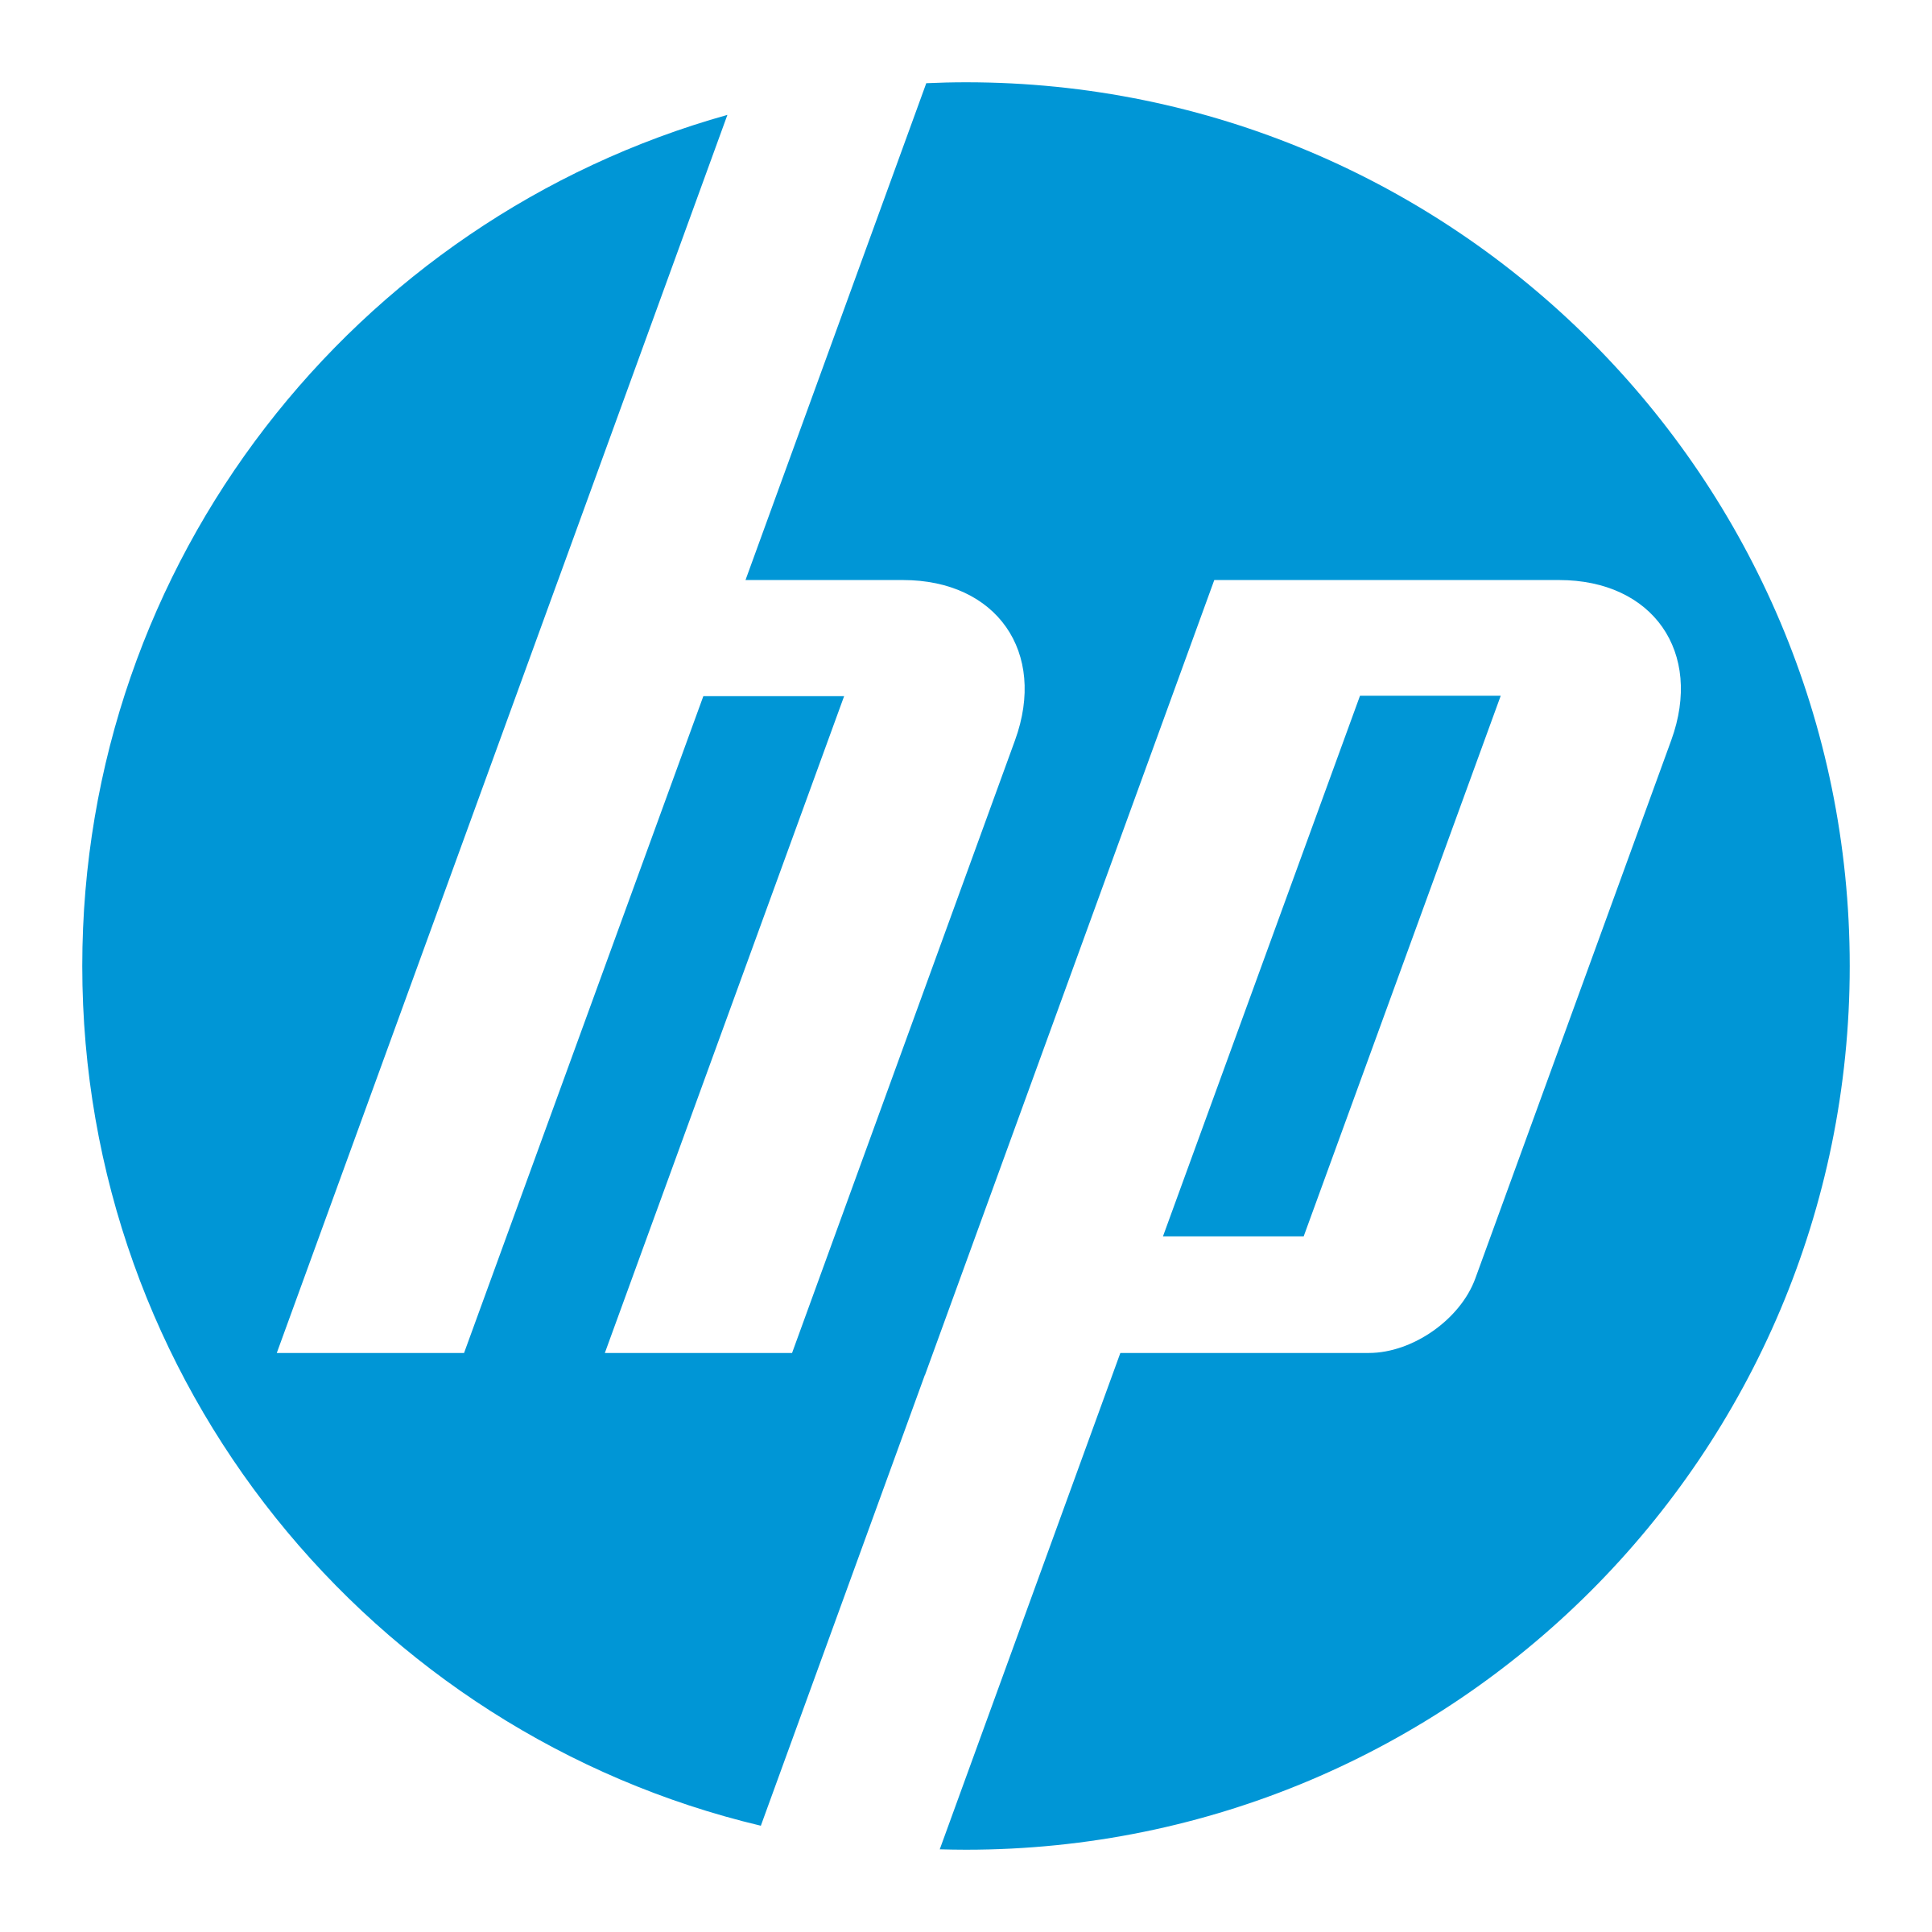 hewlett packard logo png transparent